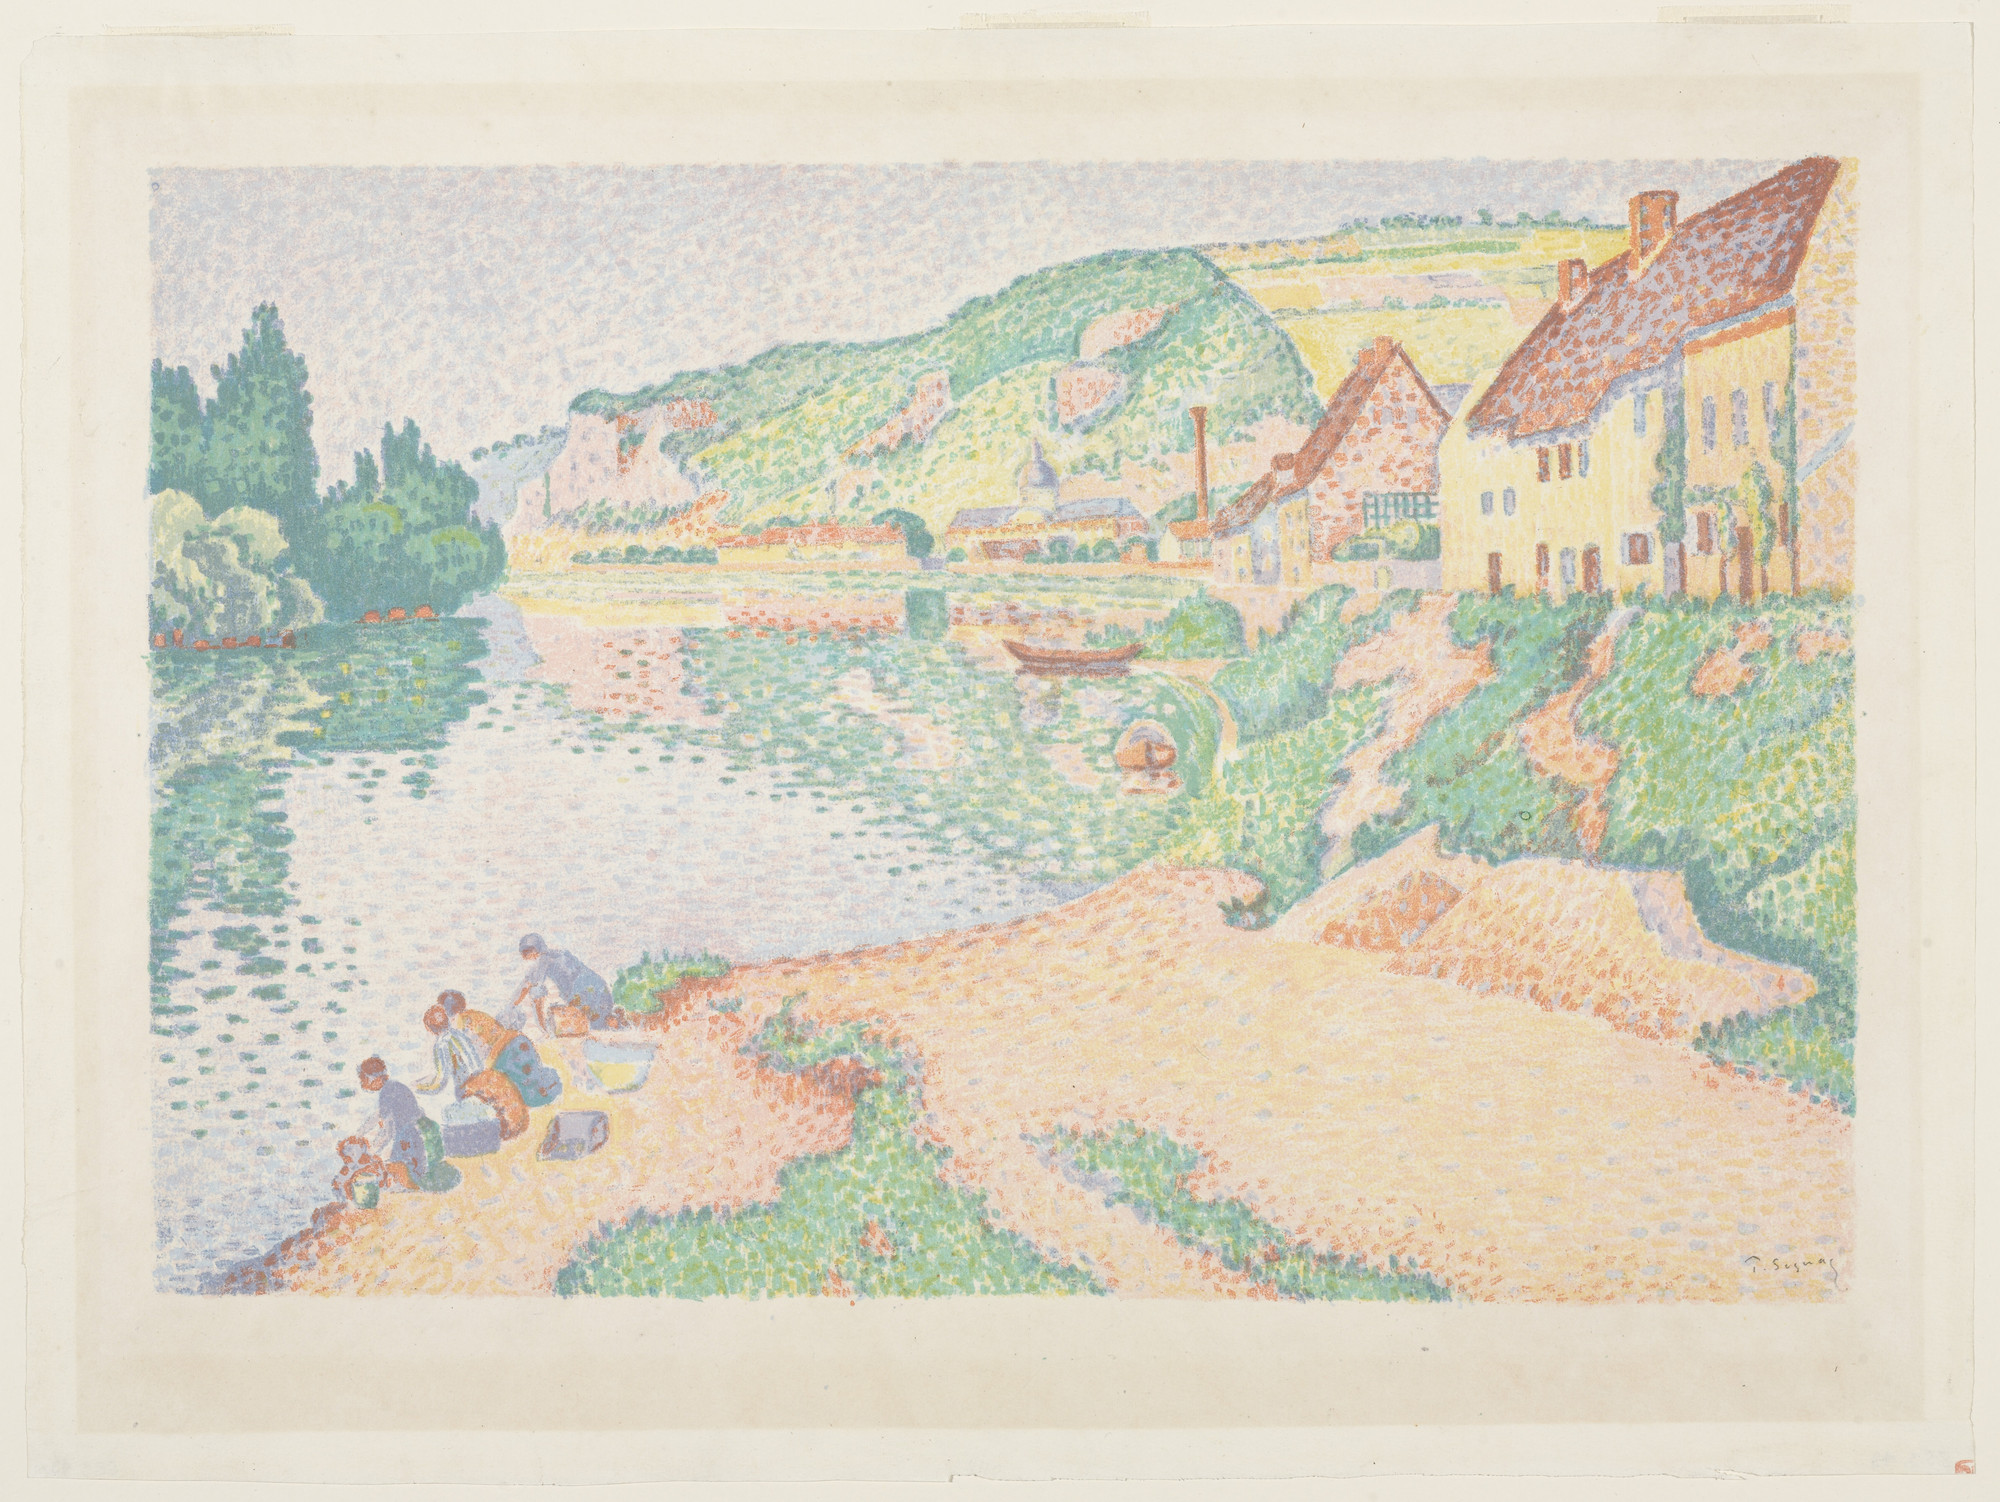 Paul Signac. The Andelys. 1895